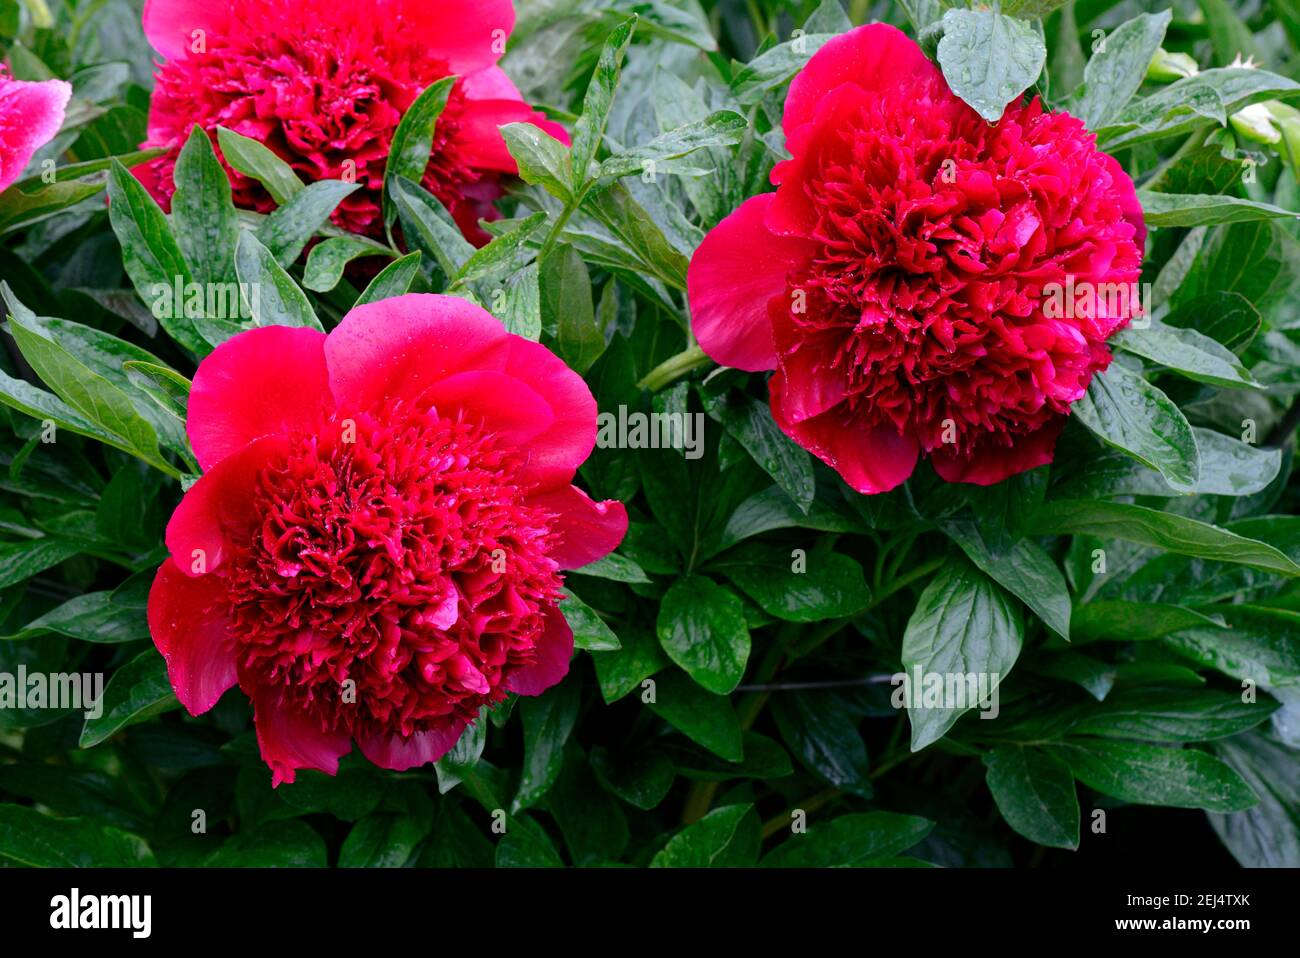 Peony, Red Charm variety( Paeonia lactiflora x officinalis) , grower Glasscock 1944, bloom, blossom, blooming, blooming, red, plant, plants, flower Stock Photo